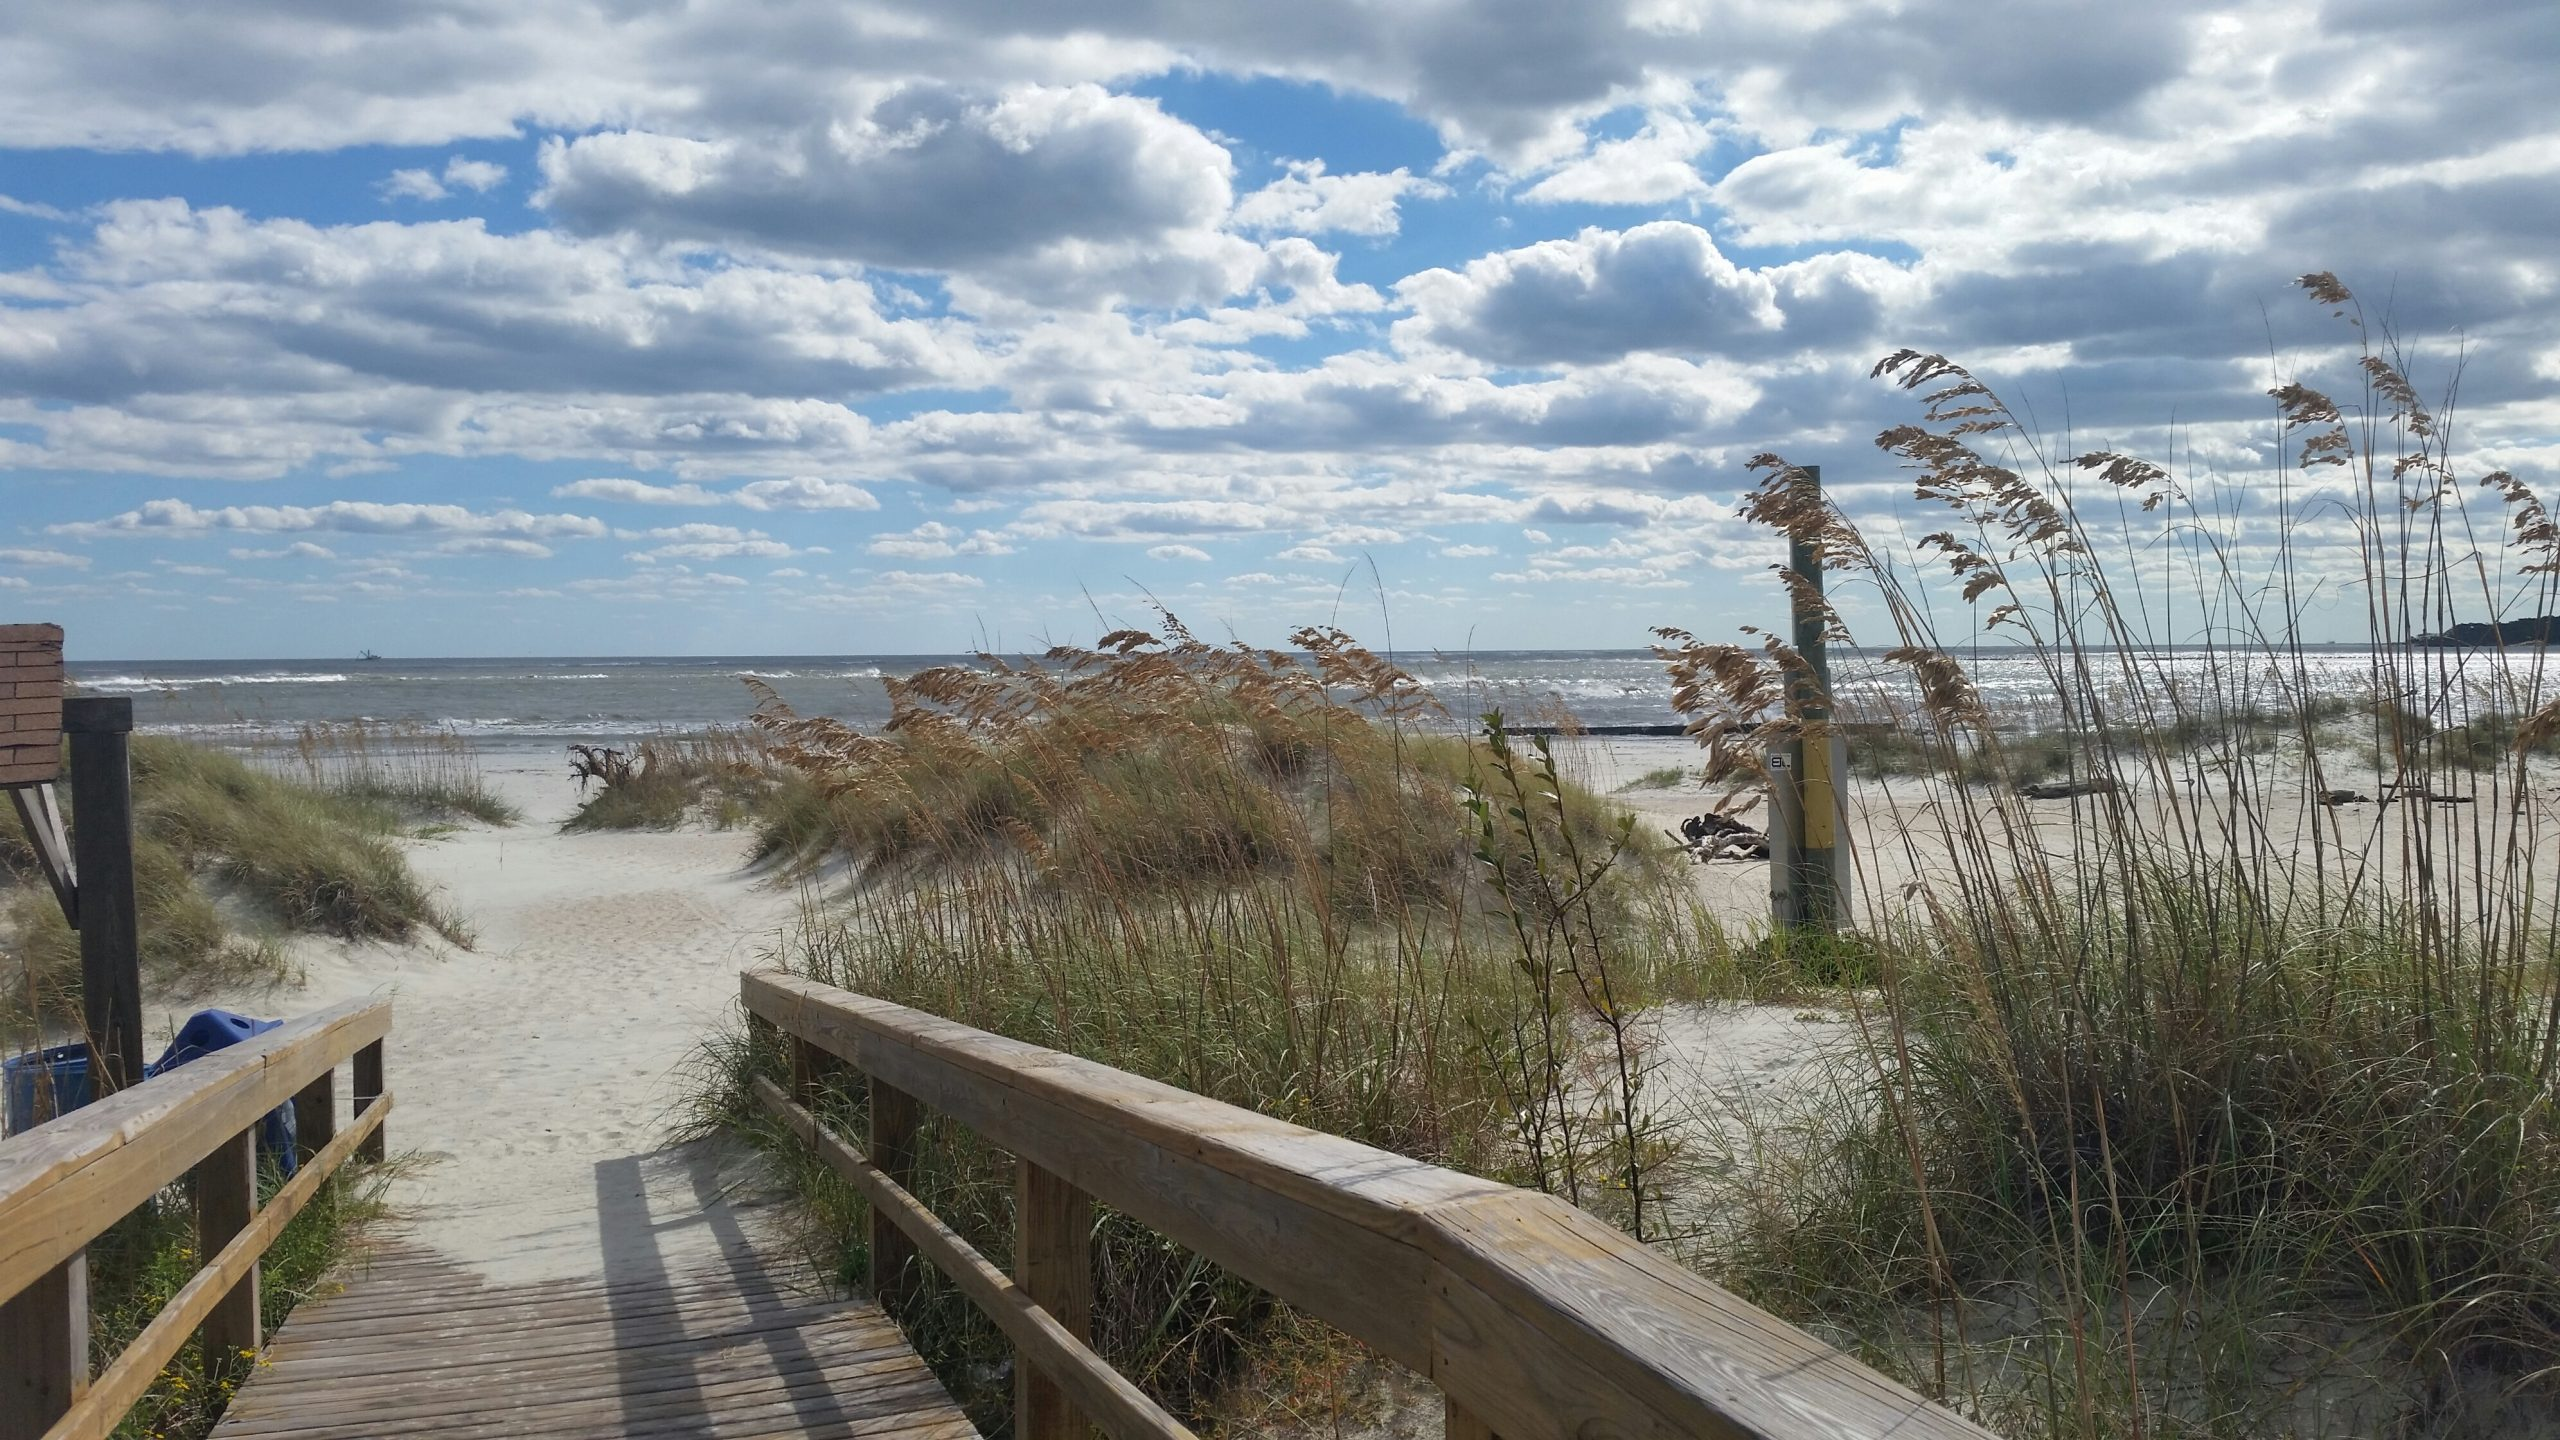 Photo of walkway on beach at Rivers End Campground in Georgia